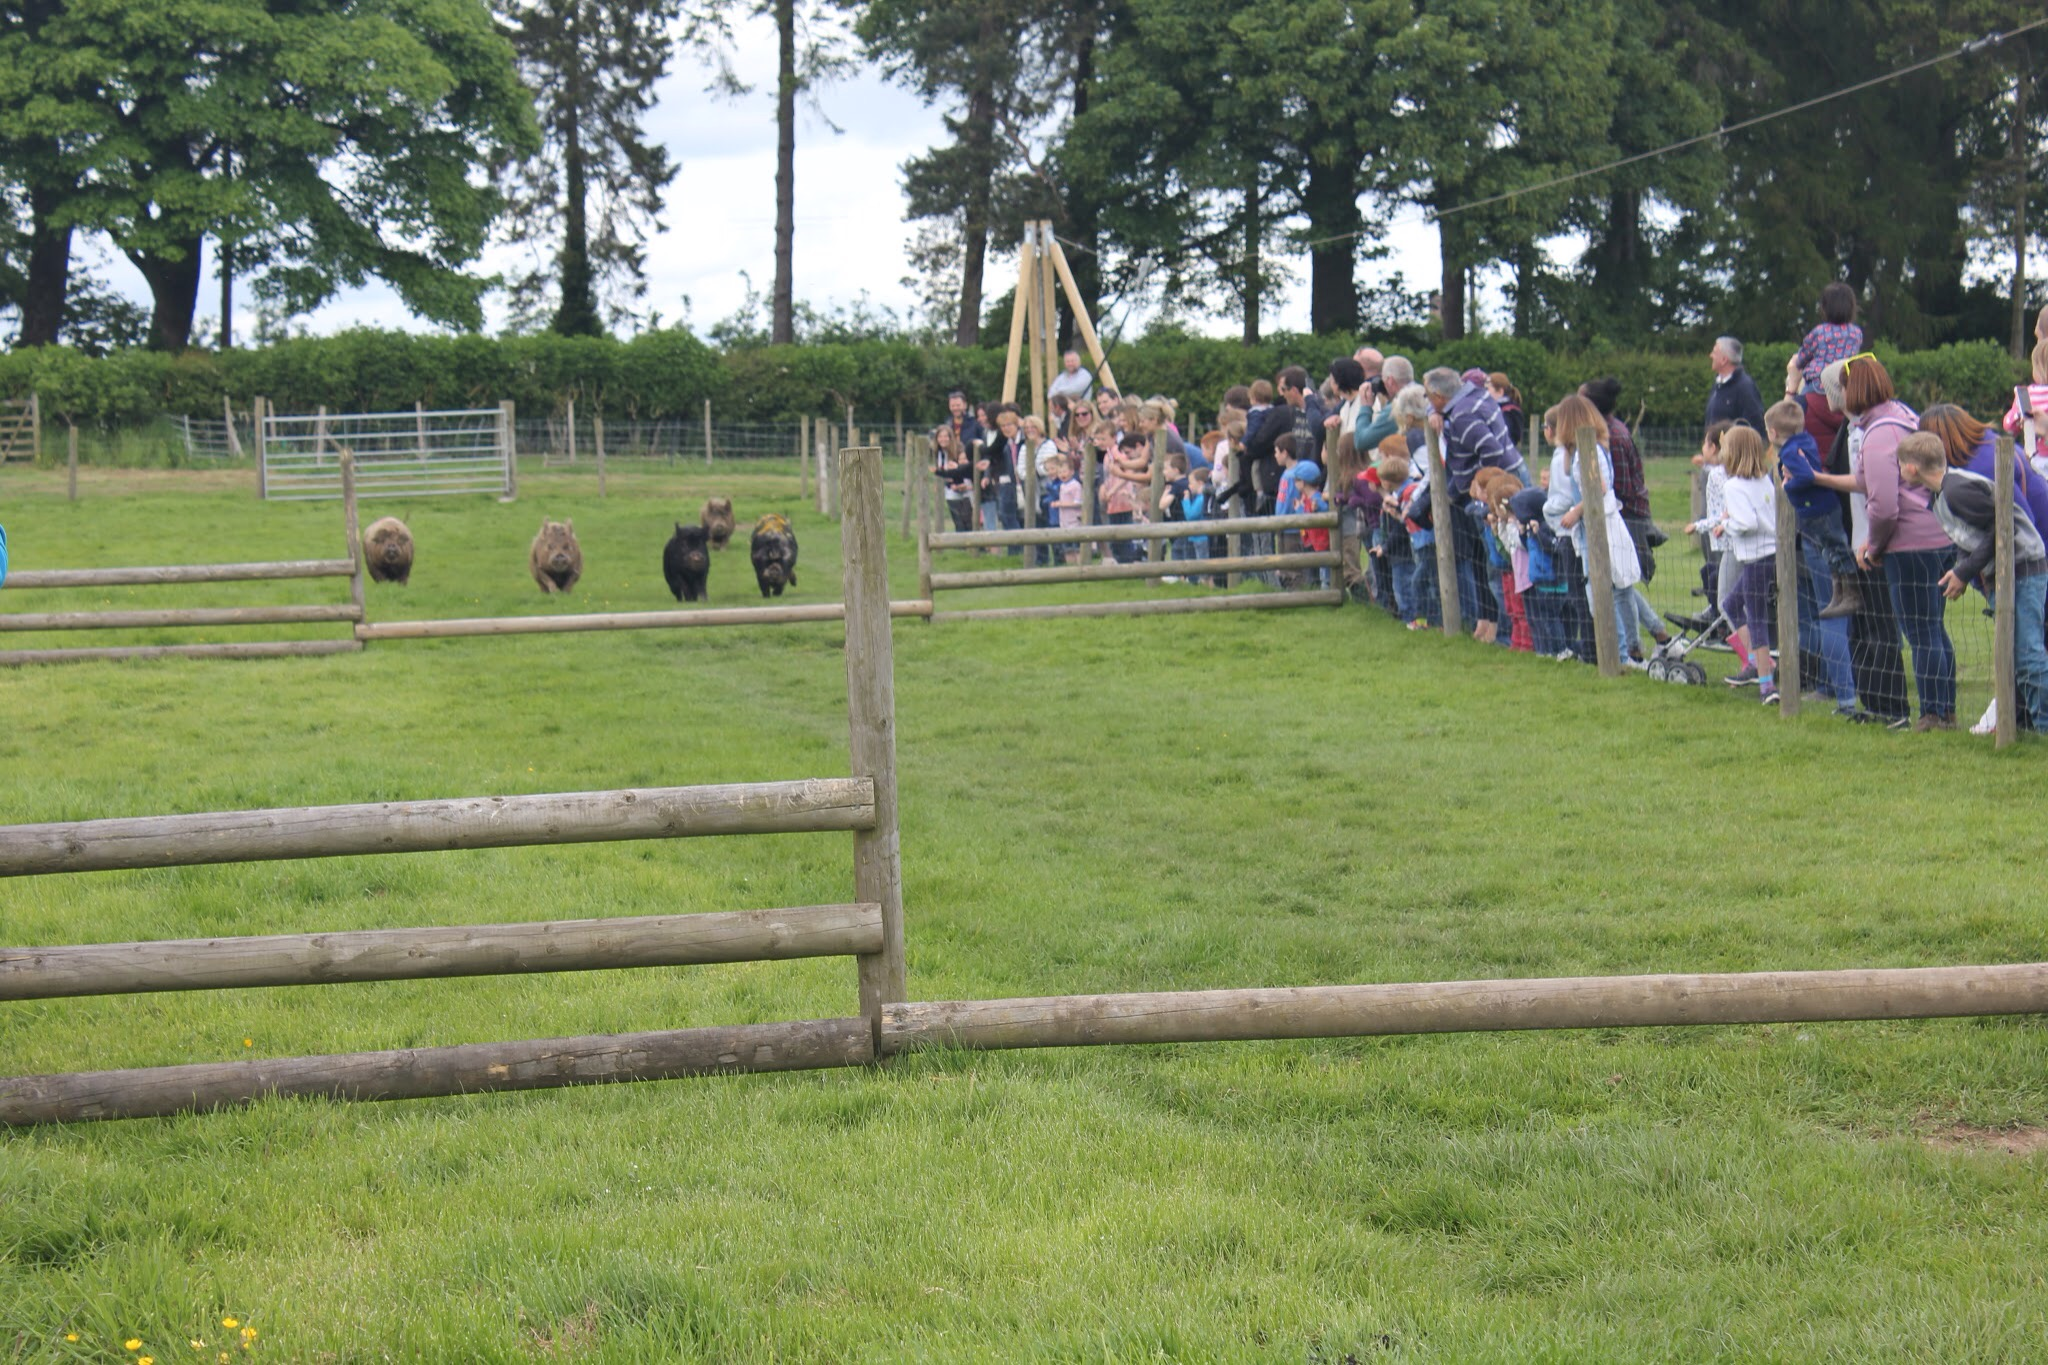 pig racing fun at park hall farm countryside experience in oswestry shropshire